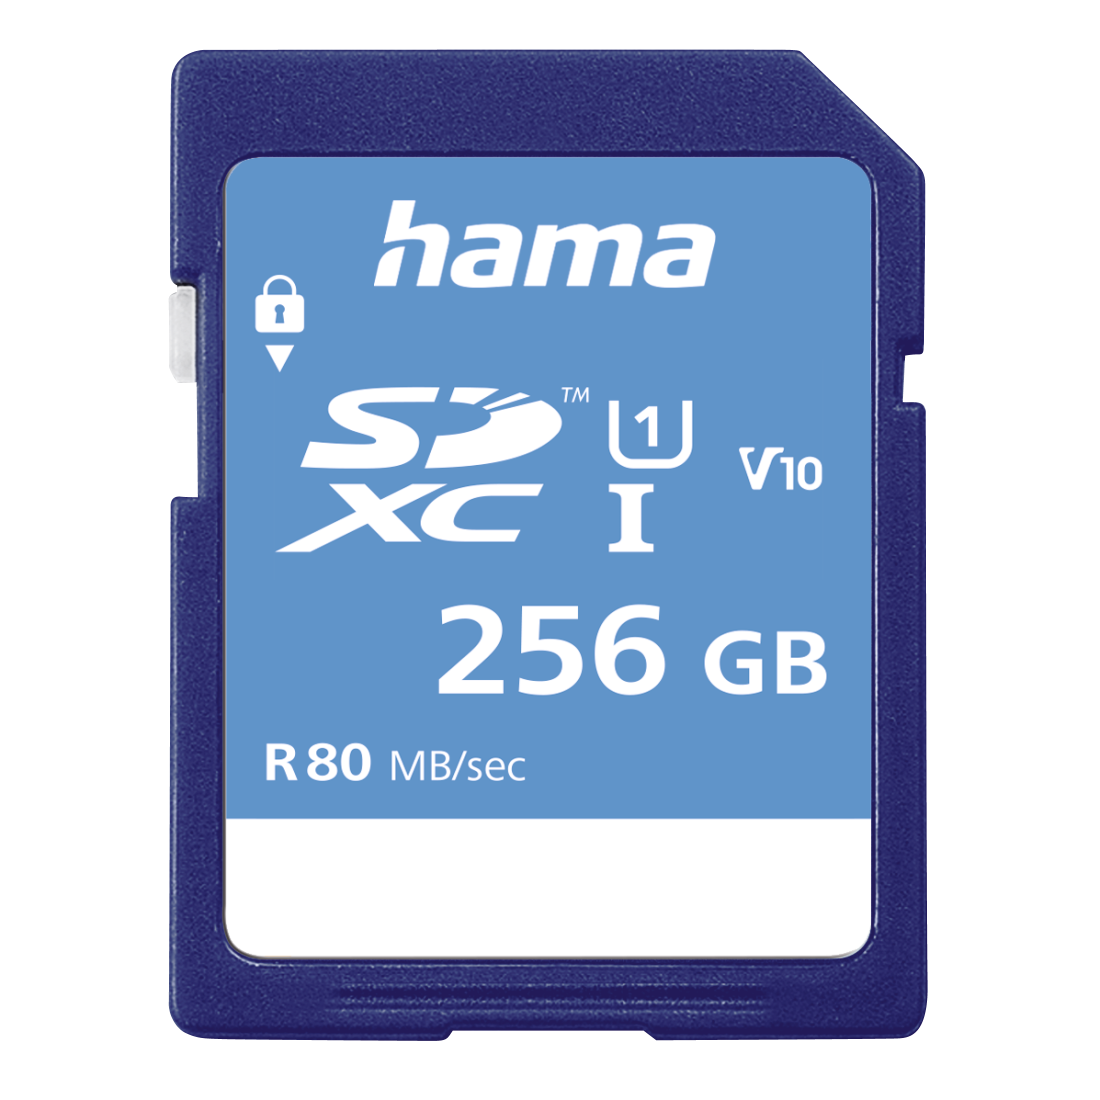 abx High-Res Image - Hama, SDXC 256GB Class 10 UHS-I 80MB/s